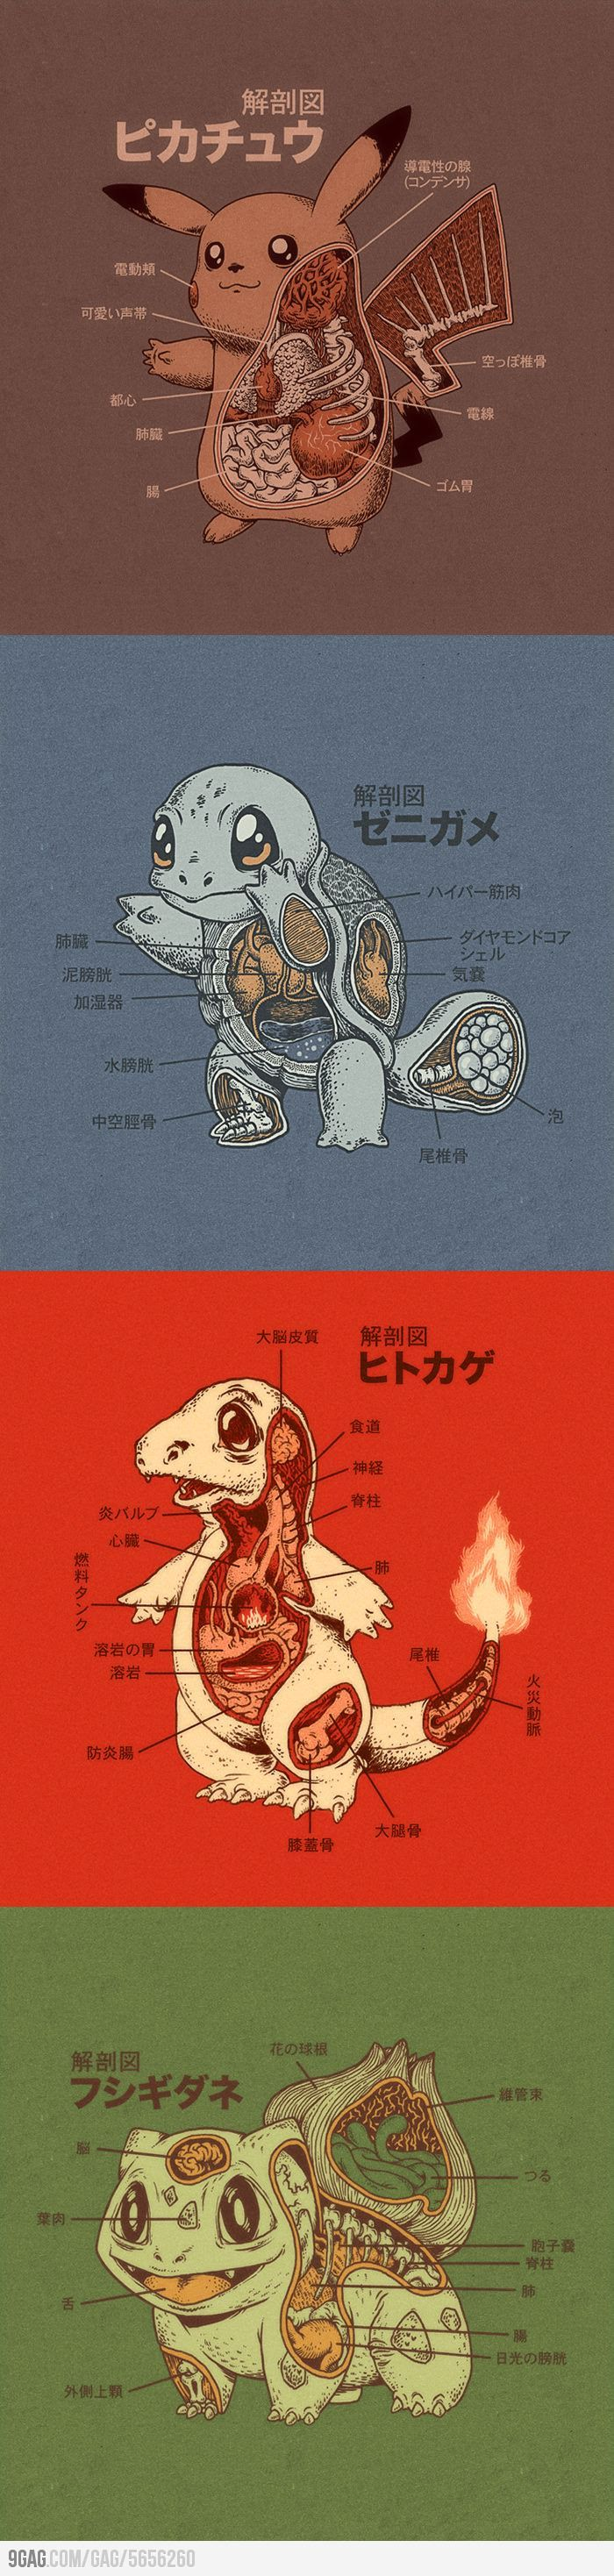 Pokemon Anatomy. Idk what this says, but it's really cool.